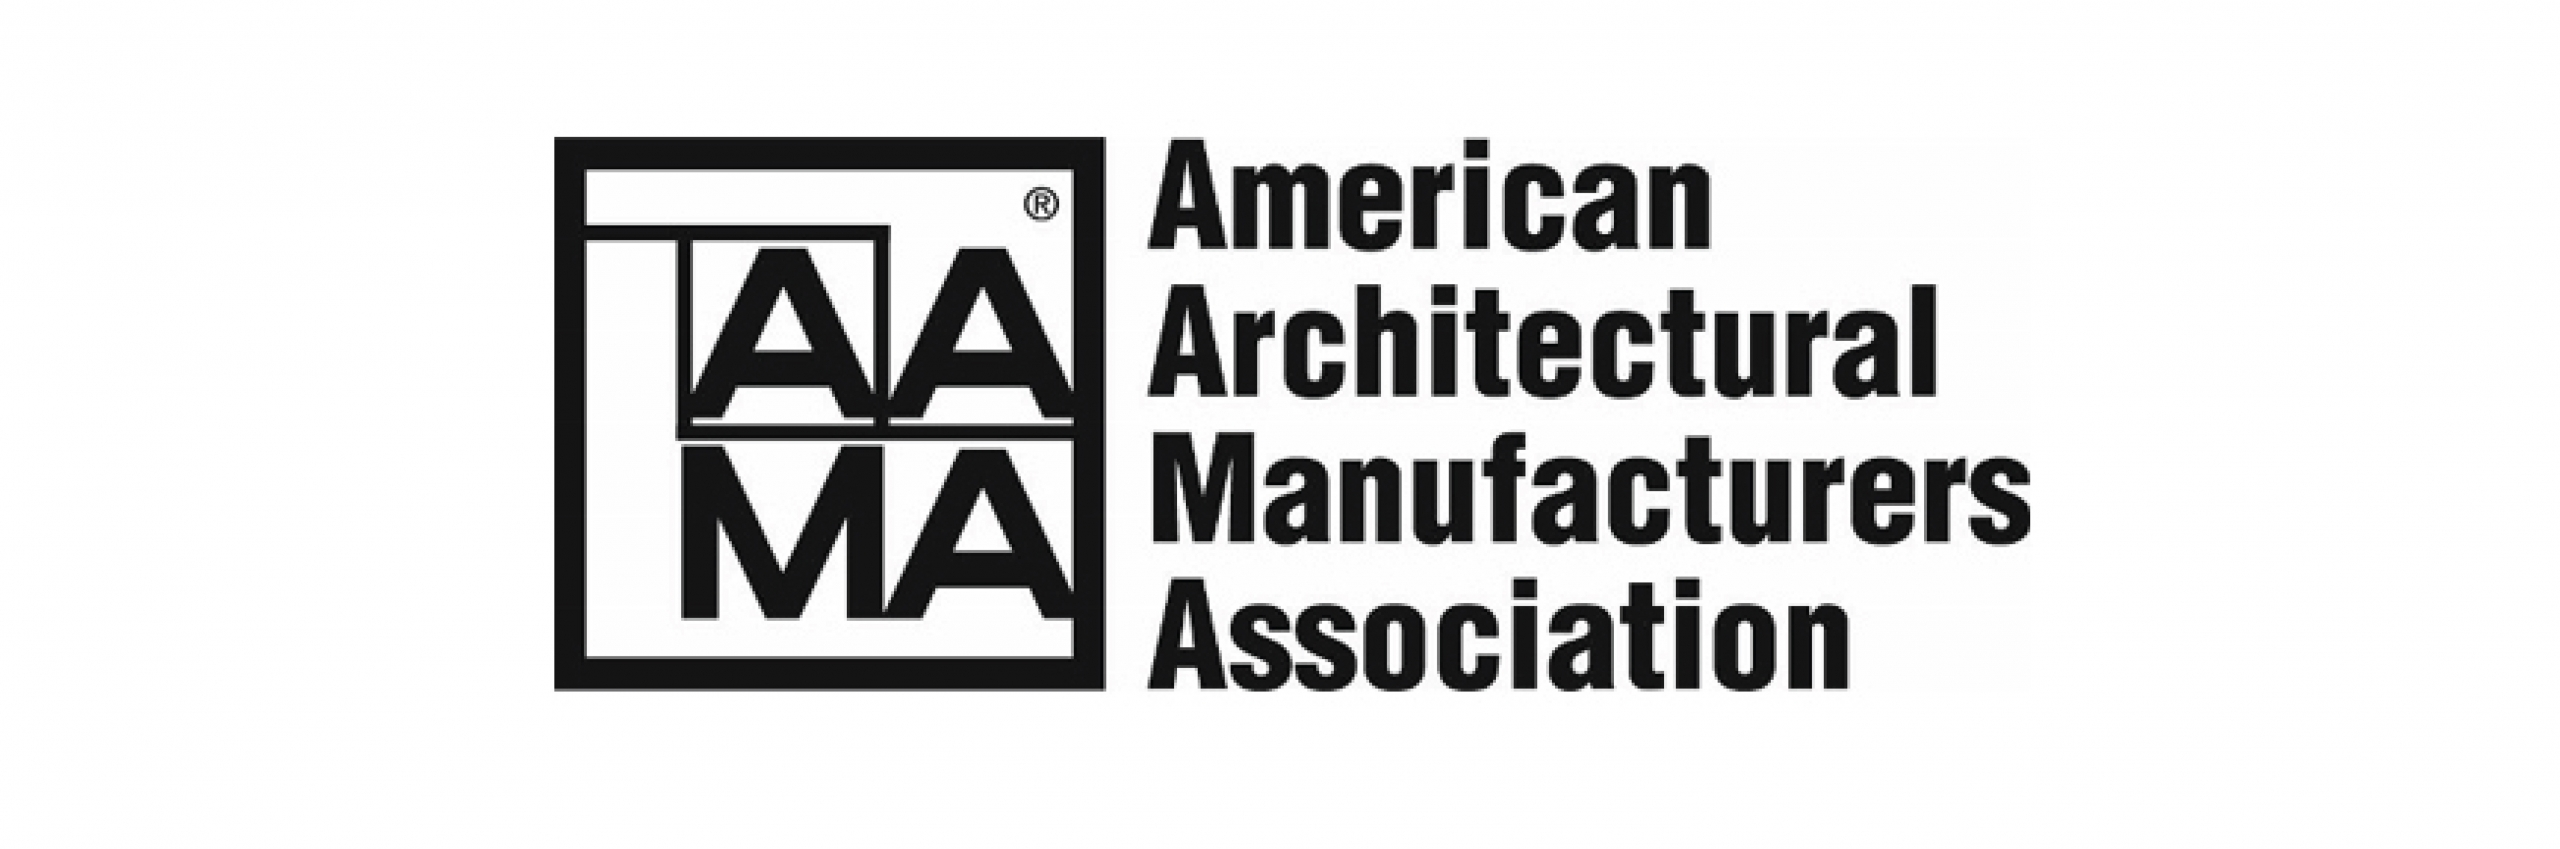 American Architectural Manufacturers Association logo